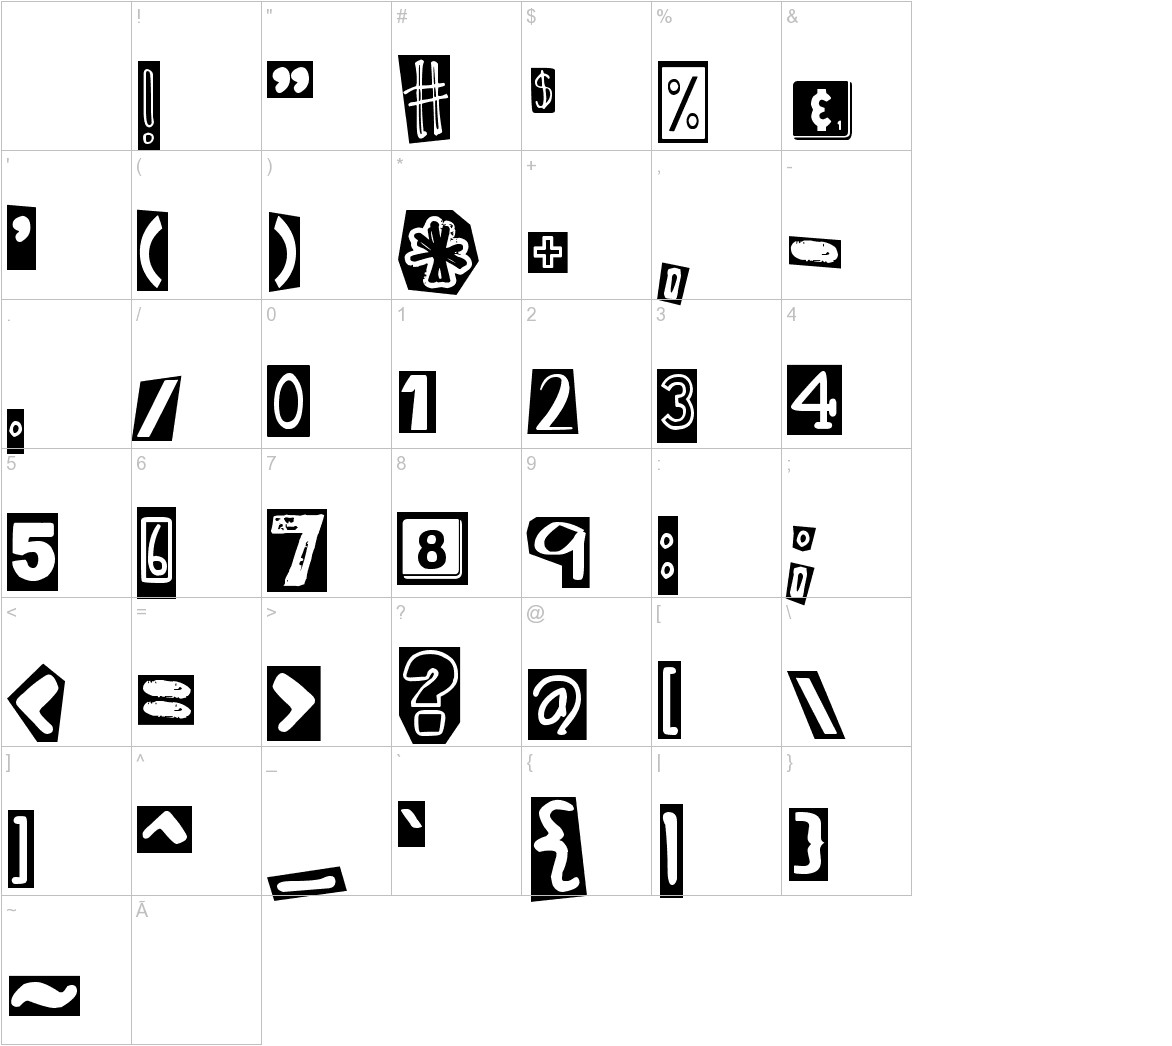 DJB Ransom Note Clipped Messy characters